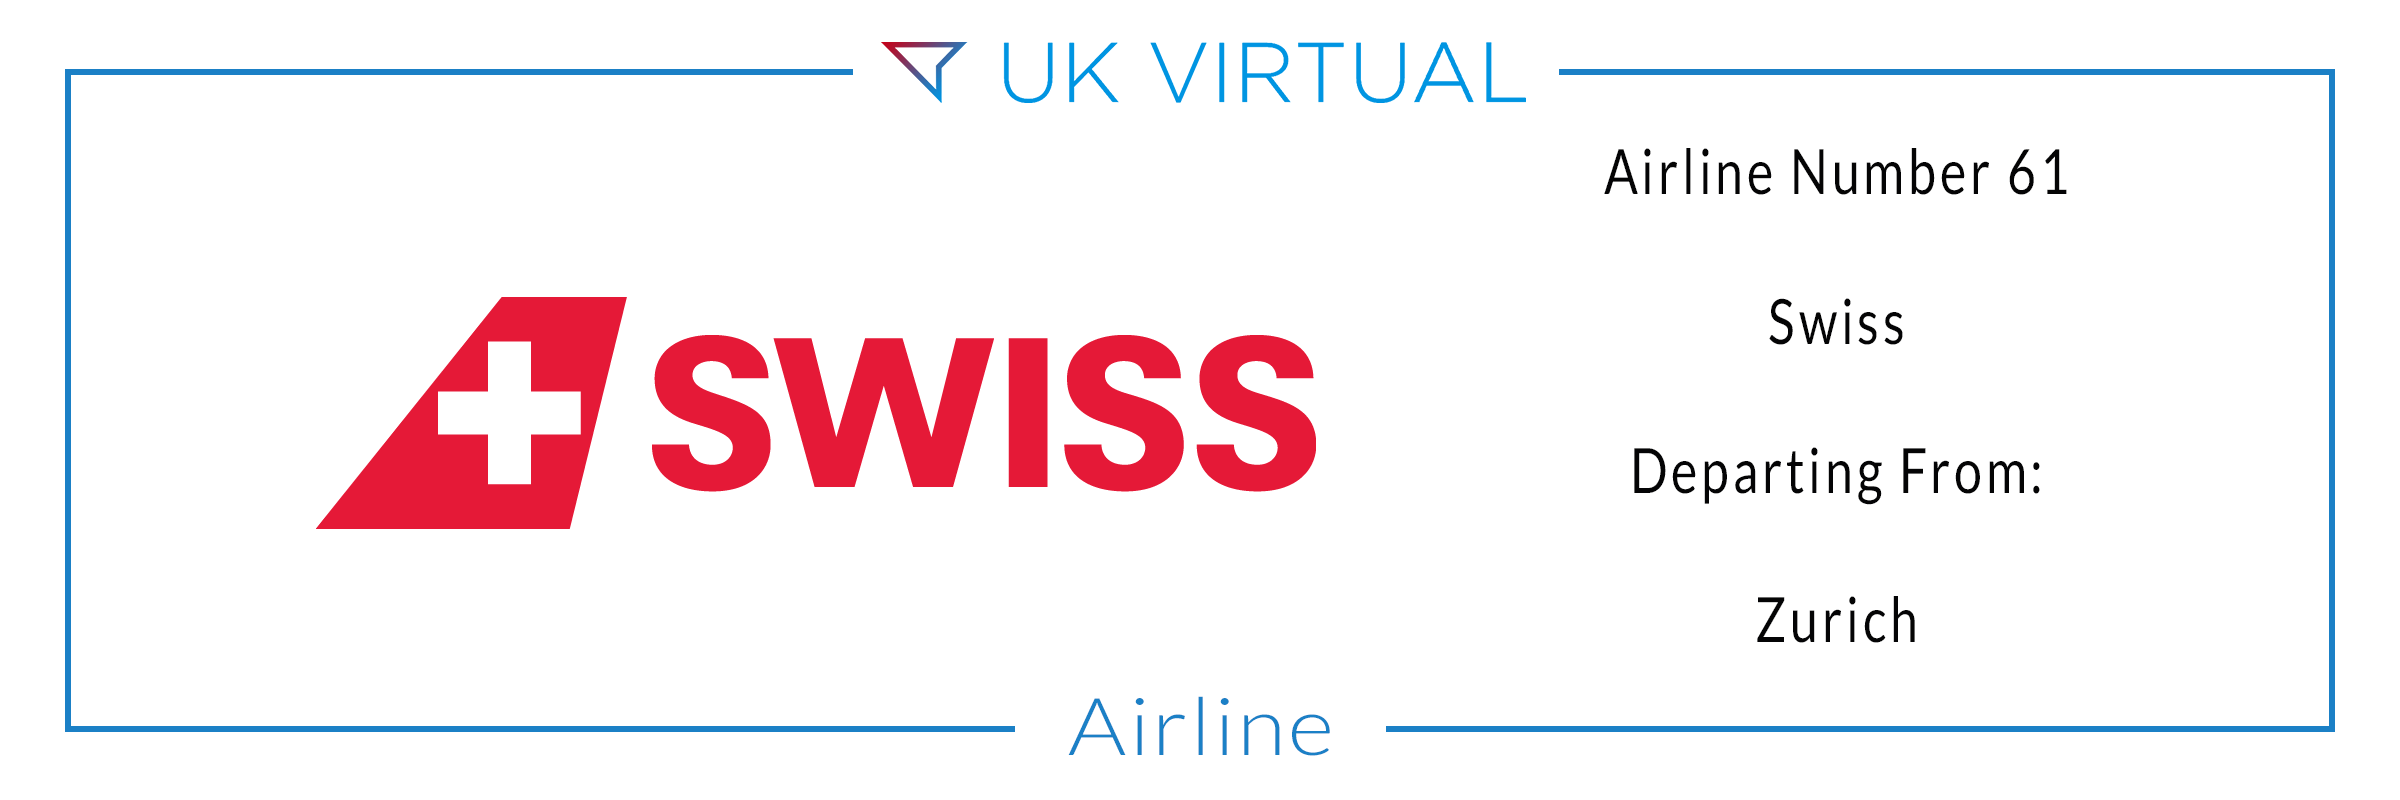 Airline Number 61: Swiss International Air Lines